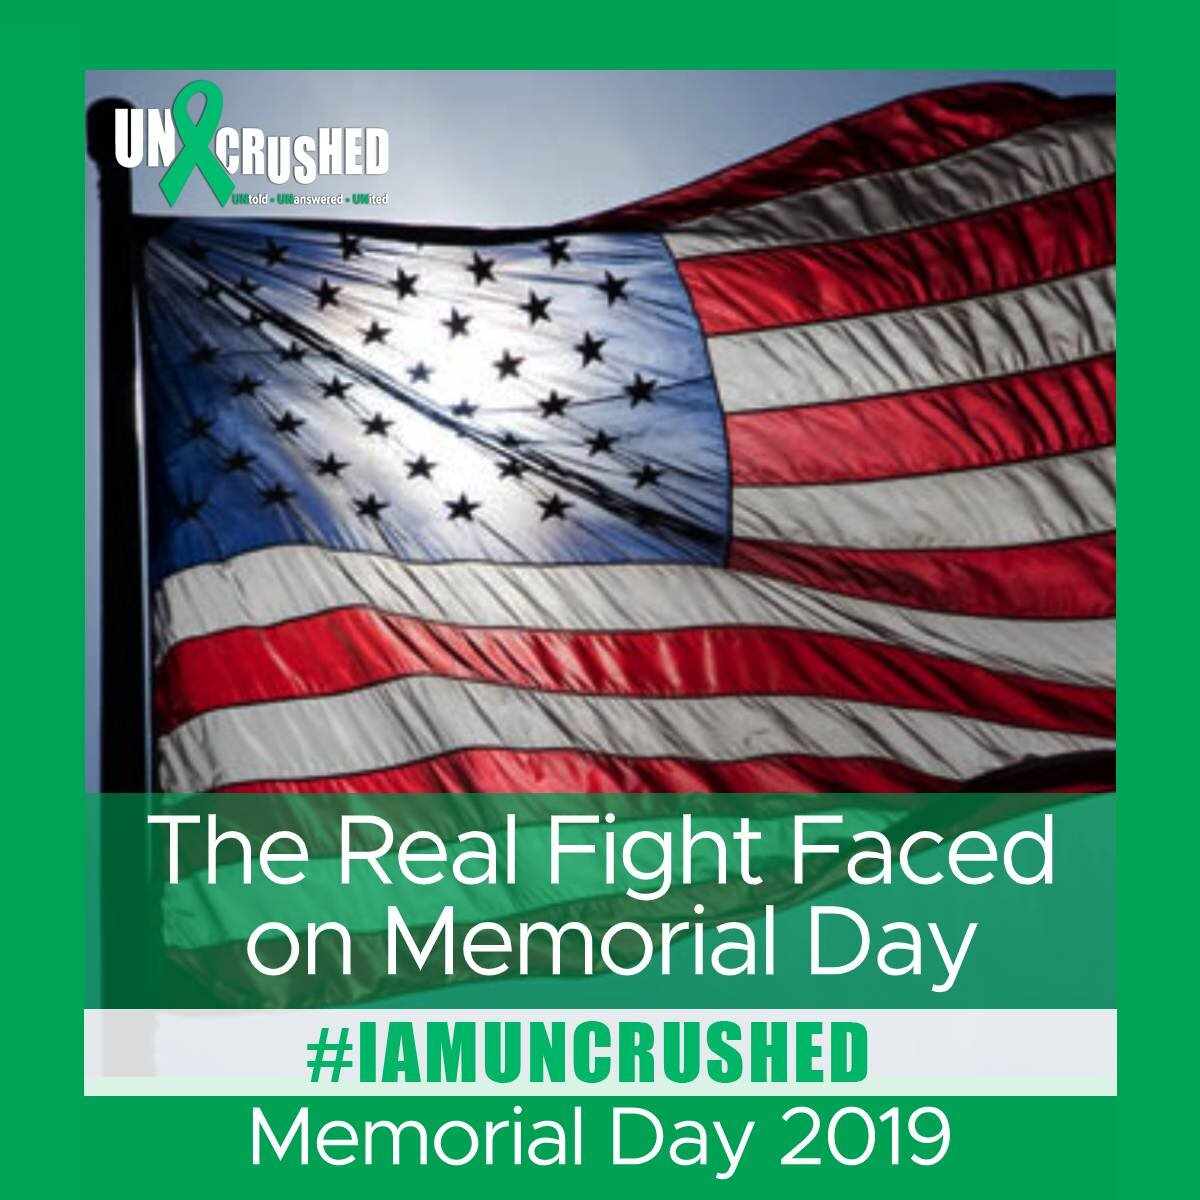 Read  The Real Fight Faced on Memorial Day  here.